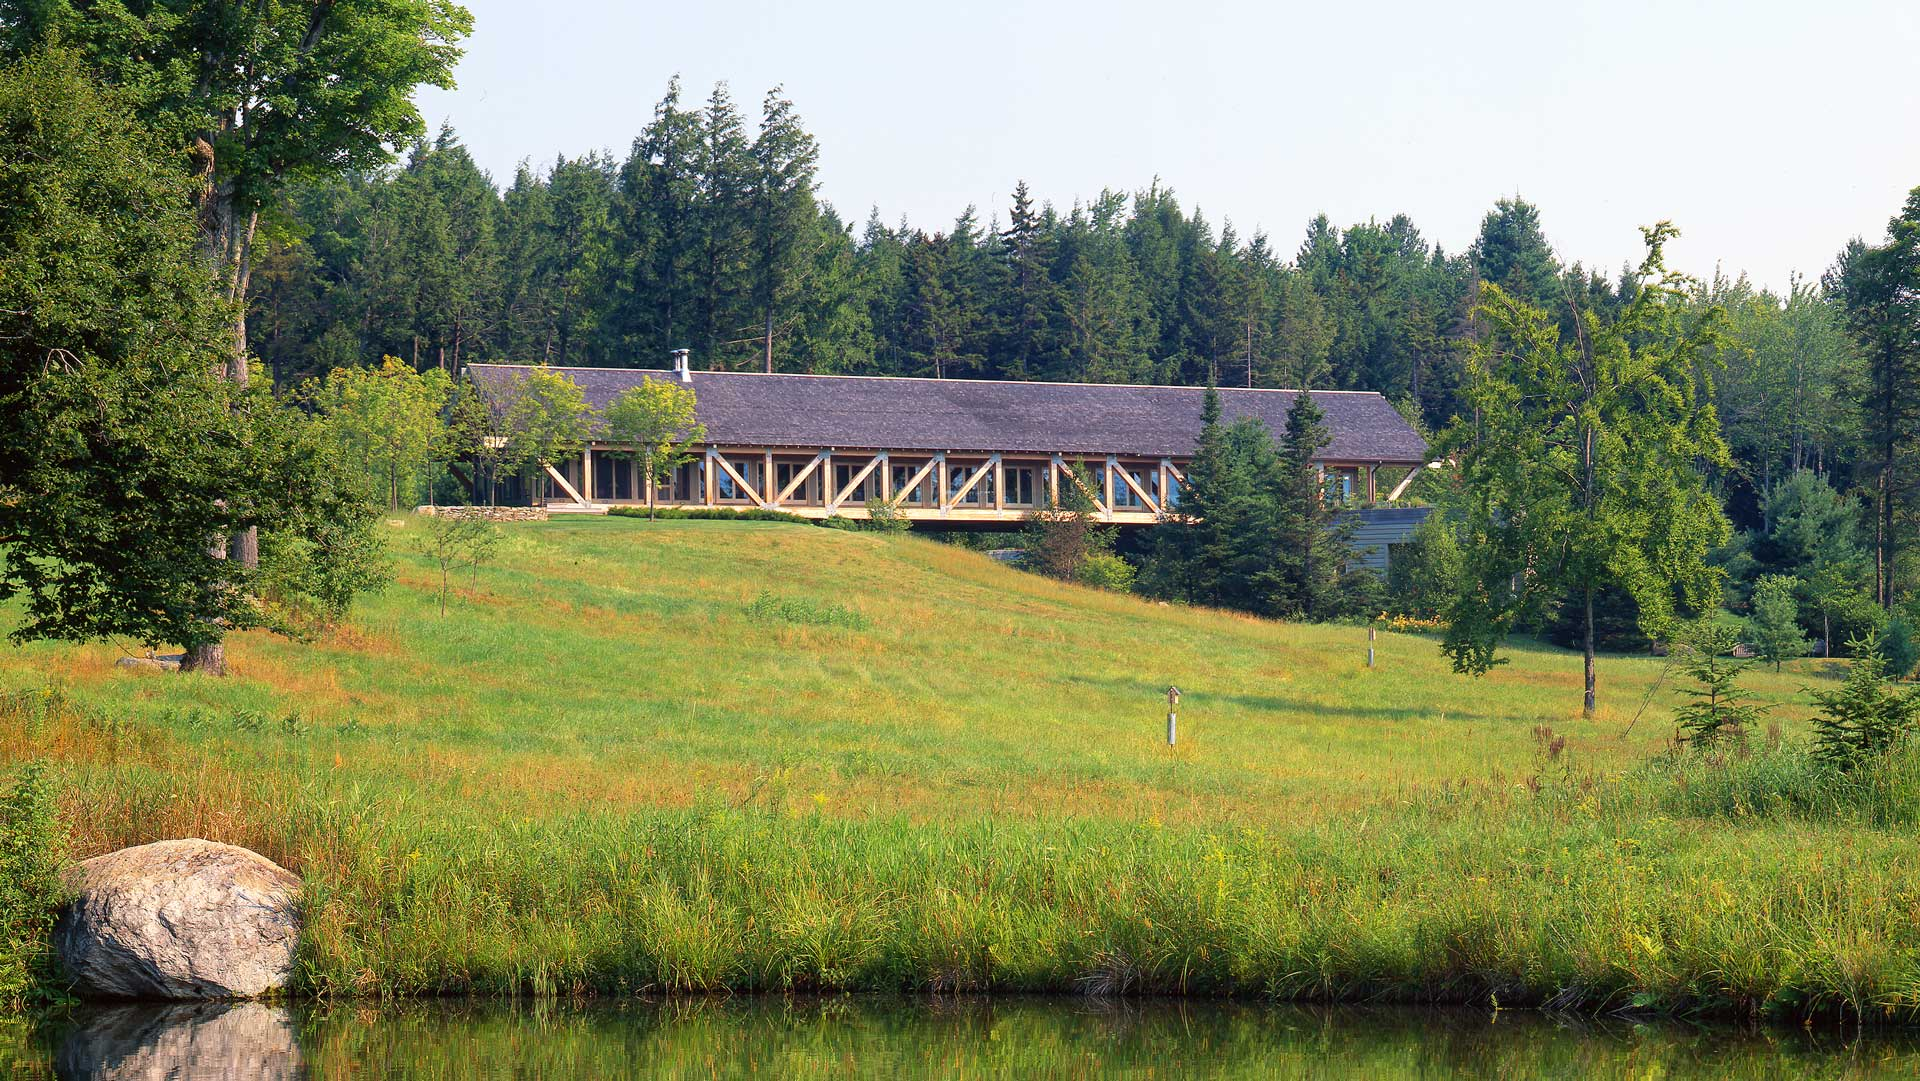 Exterior photo showing the entire bridge building, the pond and grassland in the front, and woods in the back